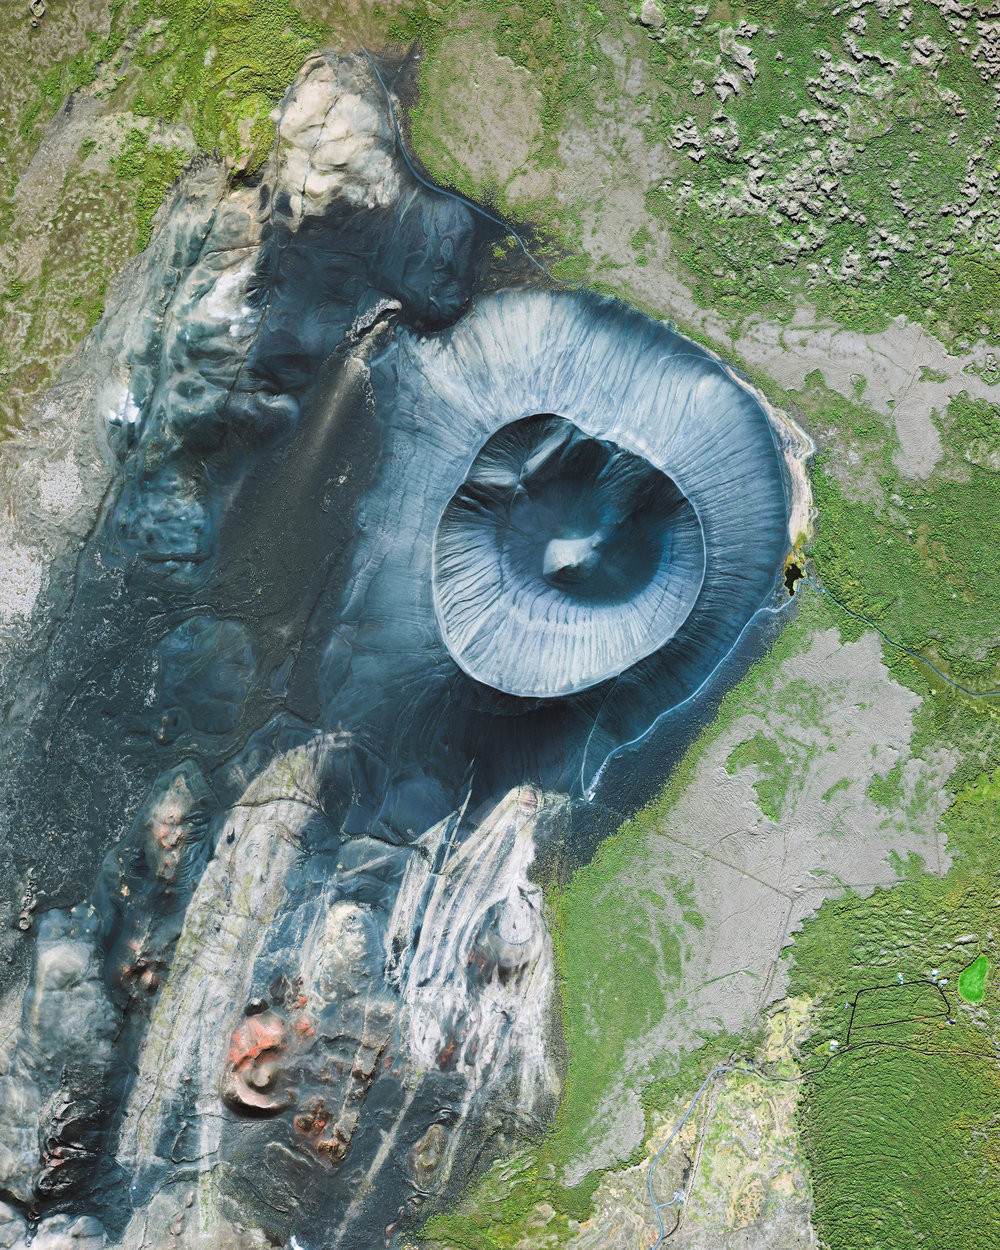 """Hverfjall is a tephra cone, or tuff ring, volcano located near the eastern shore of Lake Myvatn in northern Iceland. It erupted in 2500 BP, leaving behind a massive crater more than half a mile (1 km) in diameter. Hverfjall is just 1,300 feet (396 m) high, allowing tourists and hikers to scale its slopes and walk along the crater's rim.  65°36'19.3""""N, 16°52'21.1""""W  Source imagery: DigitalGlobe"""